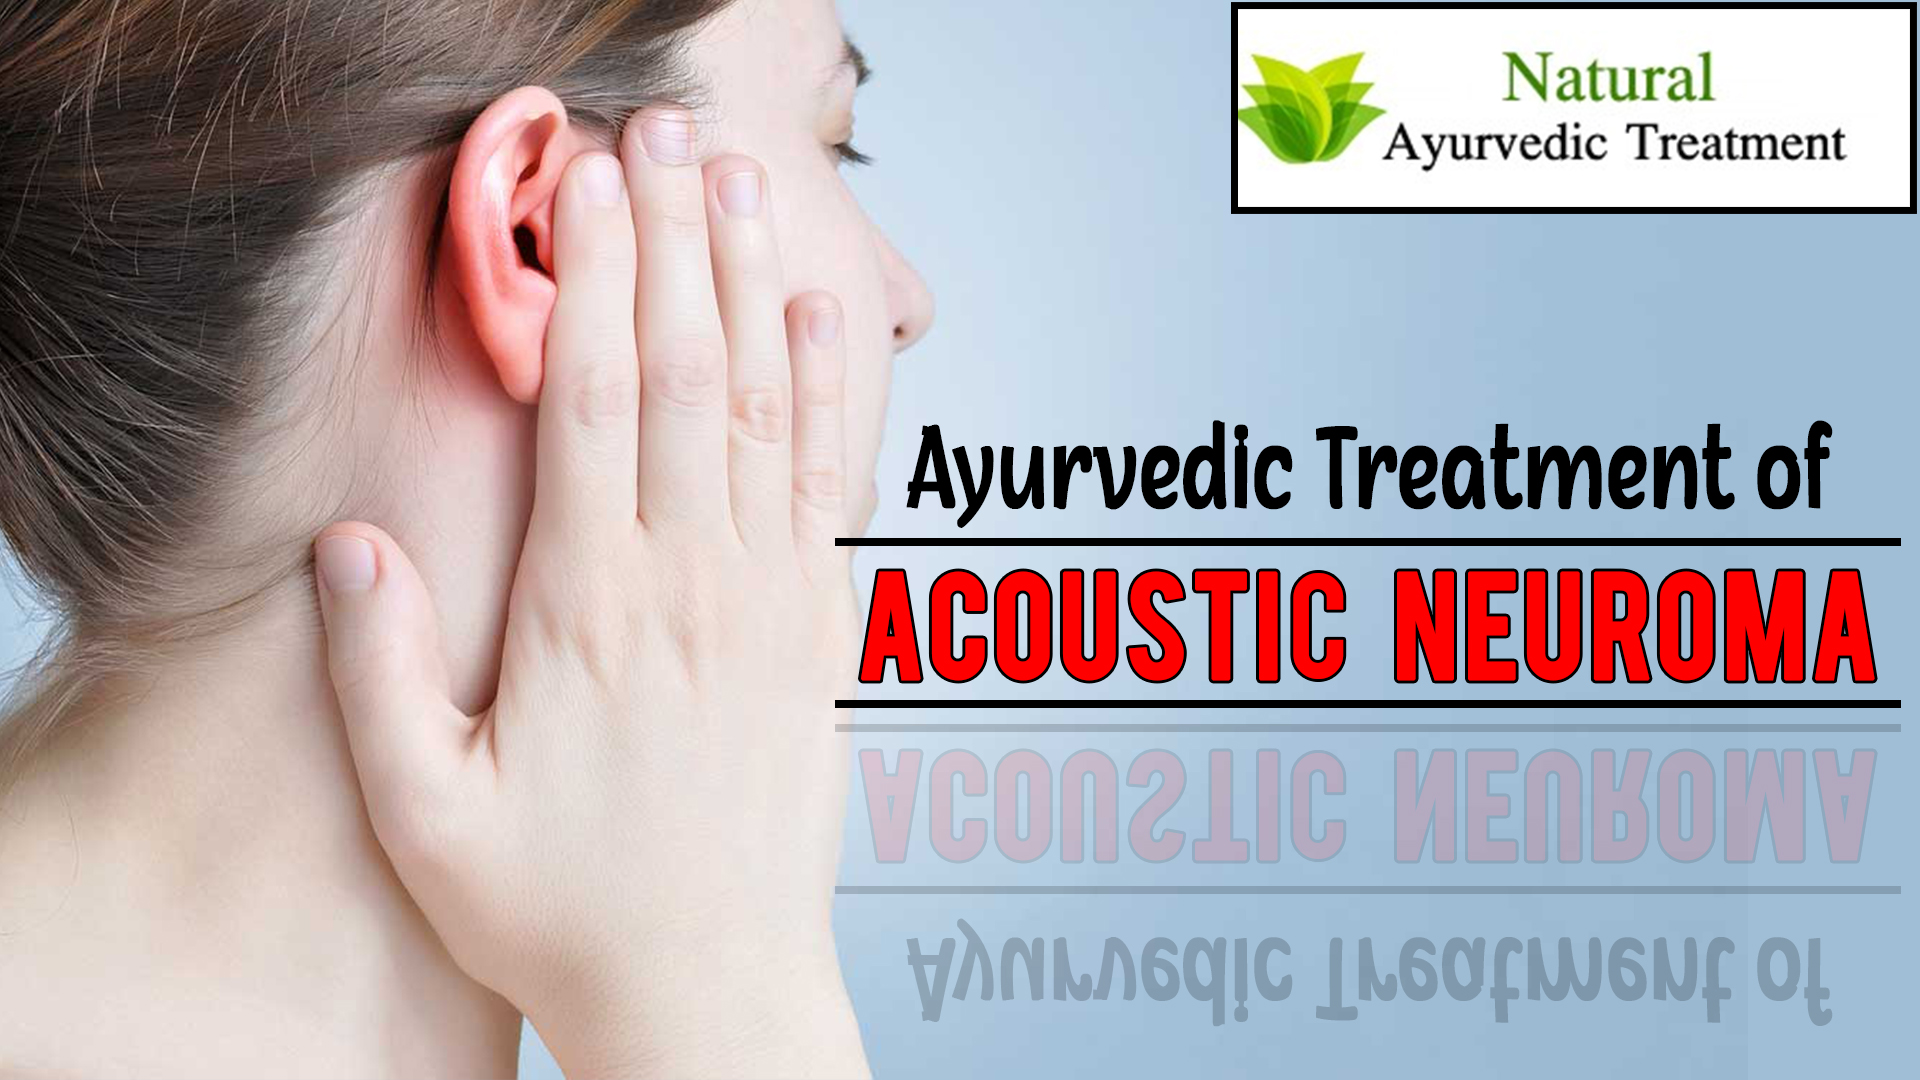 Ayurvedic Treatment for Acoustic Neuromas - Causes, Symptoms, Diagnosis & Herbal Remedies